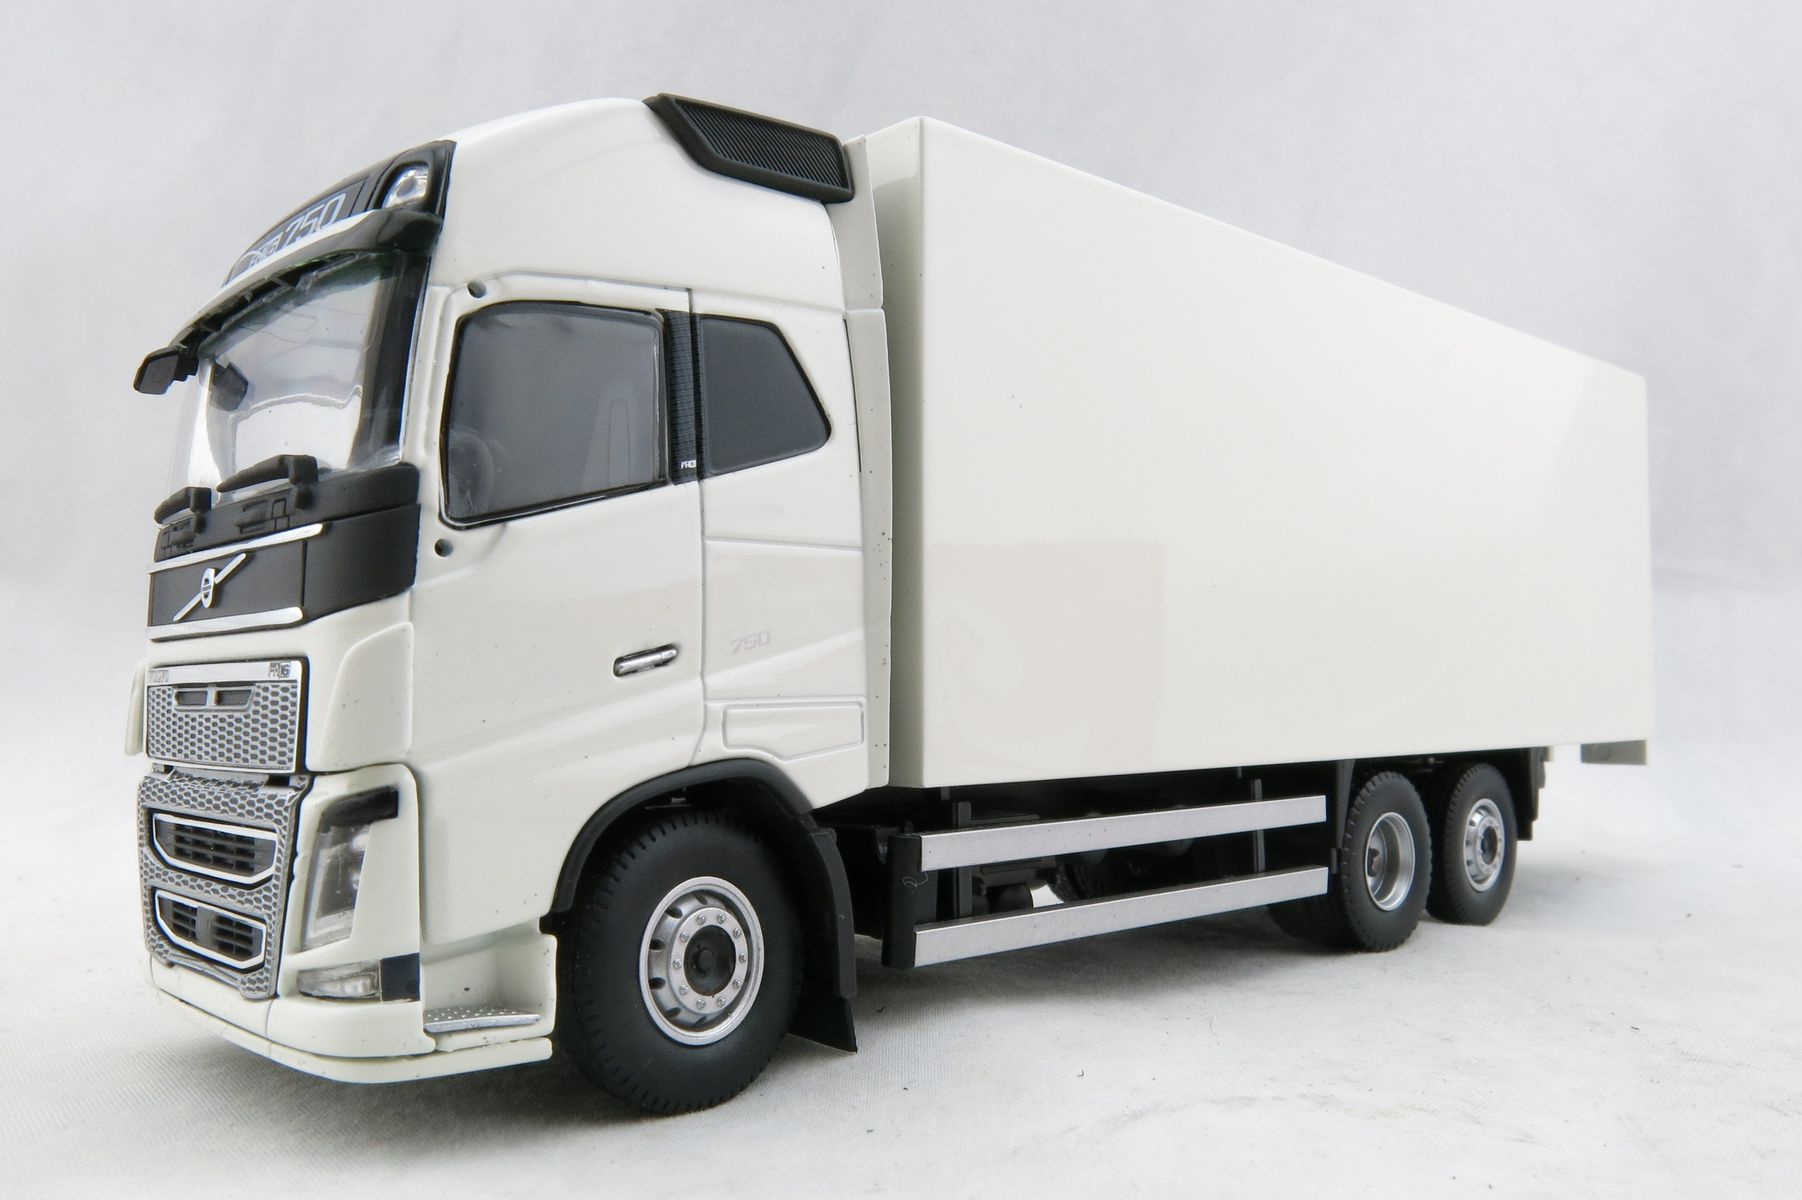 Details About Tekno 68048 Volvo Fh04 Globetrotter Xl Rigid Box Truck White Scale 1 50